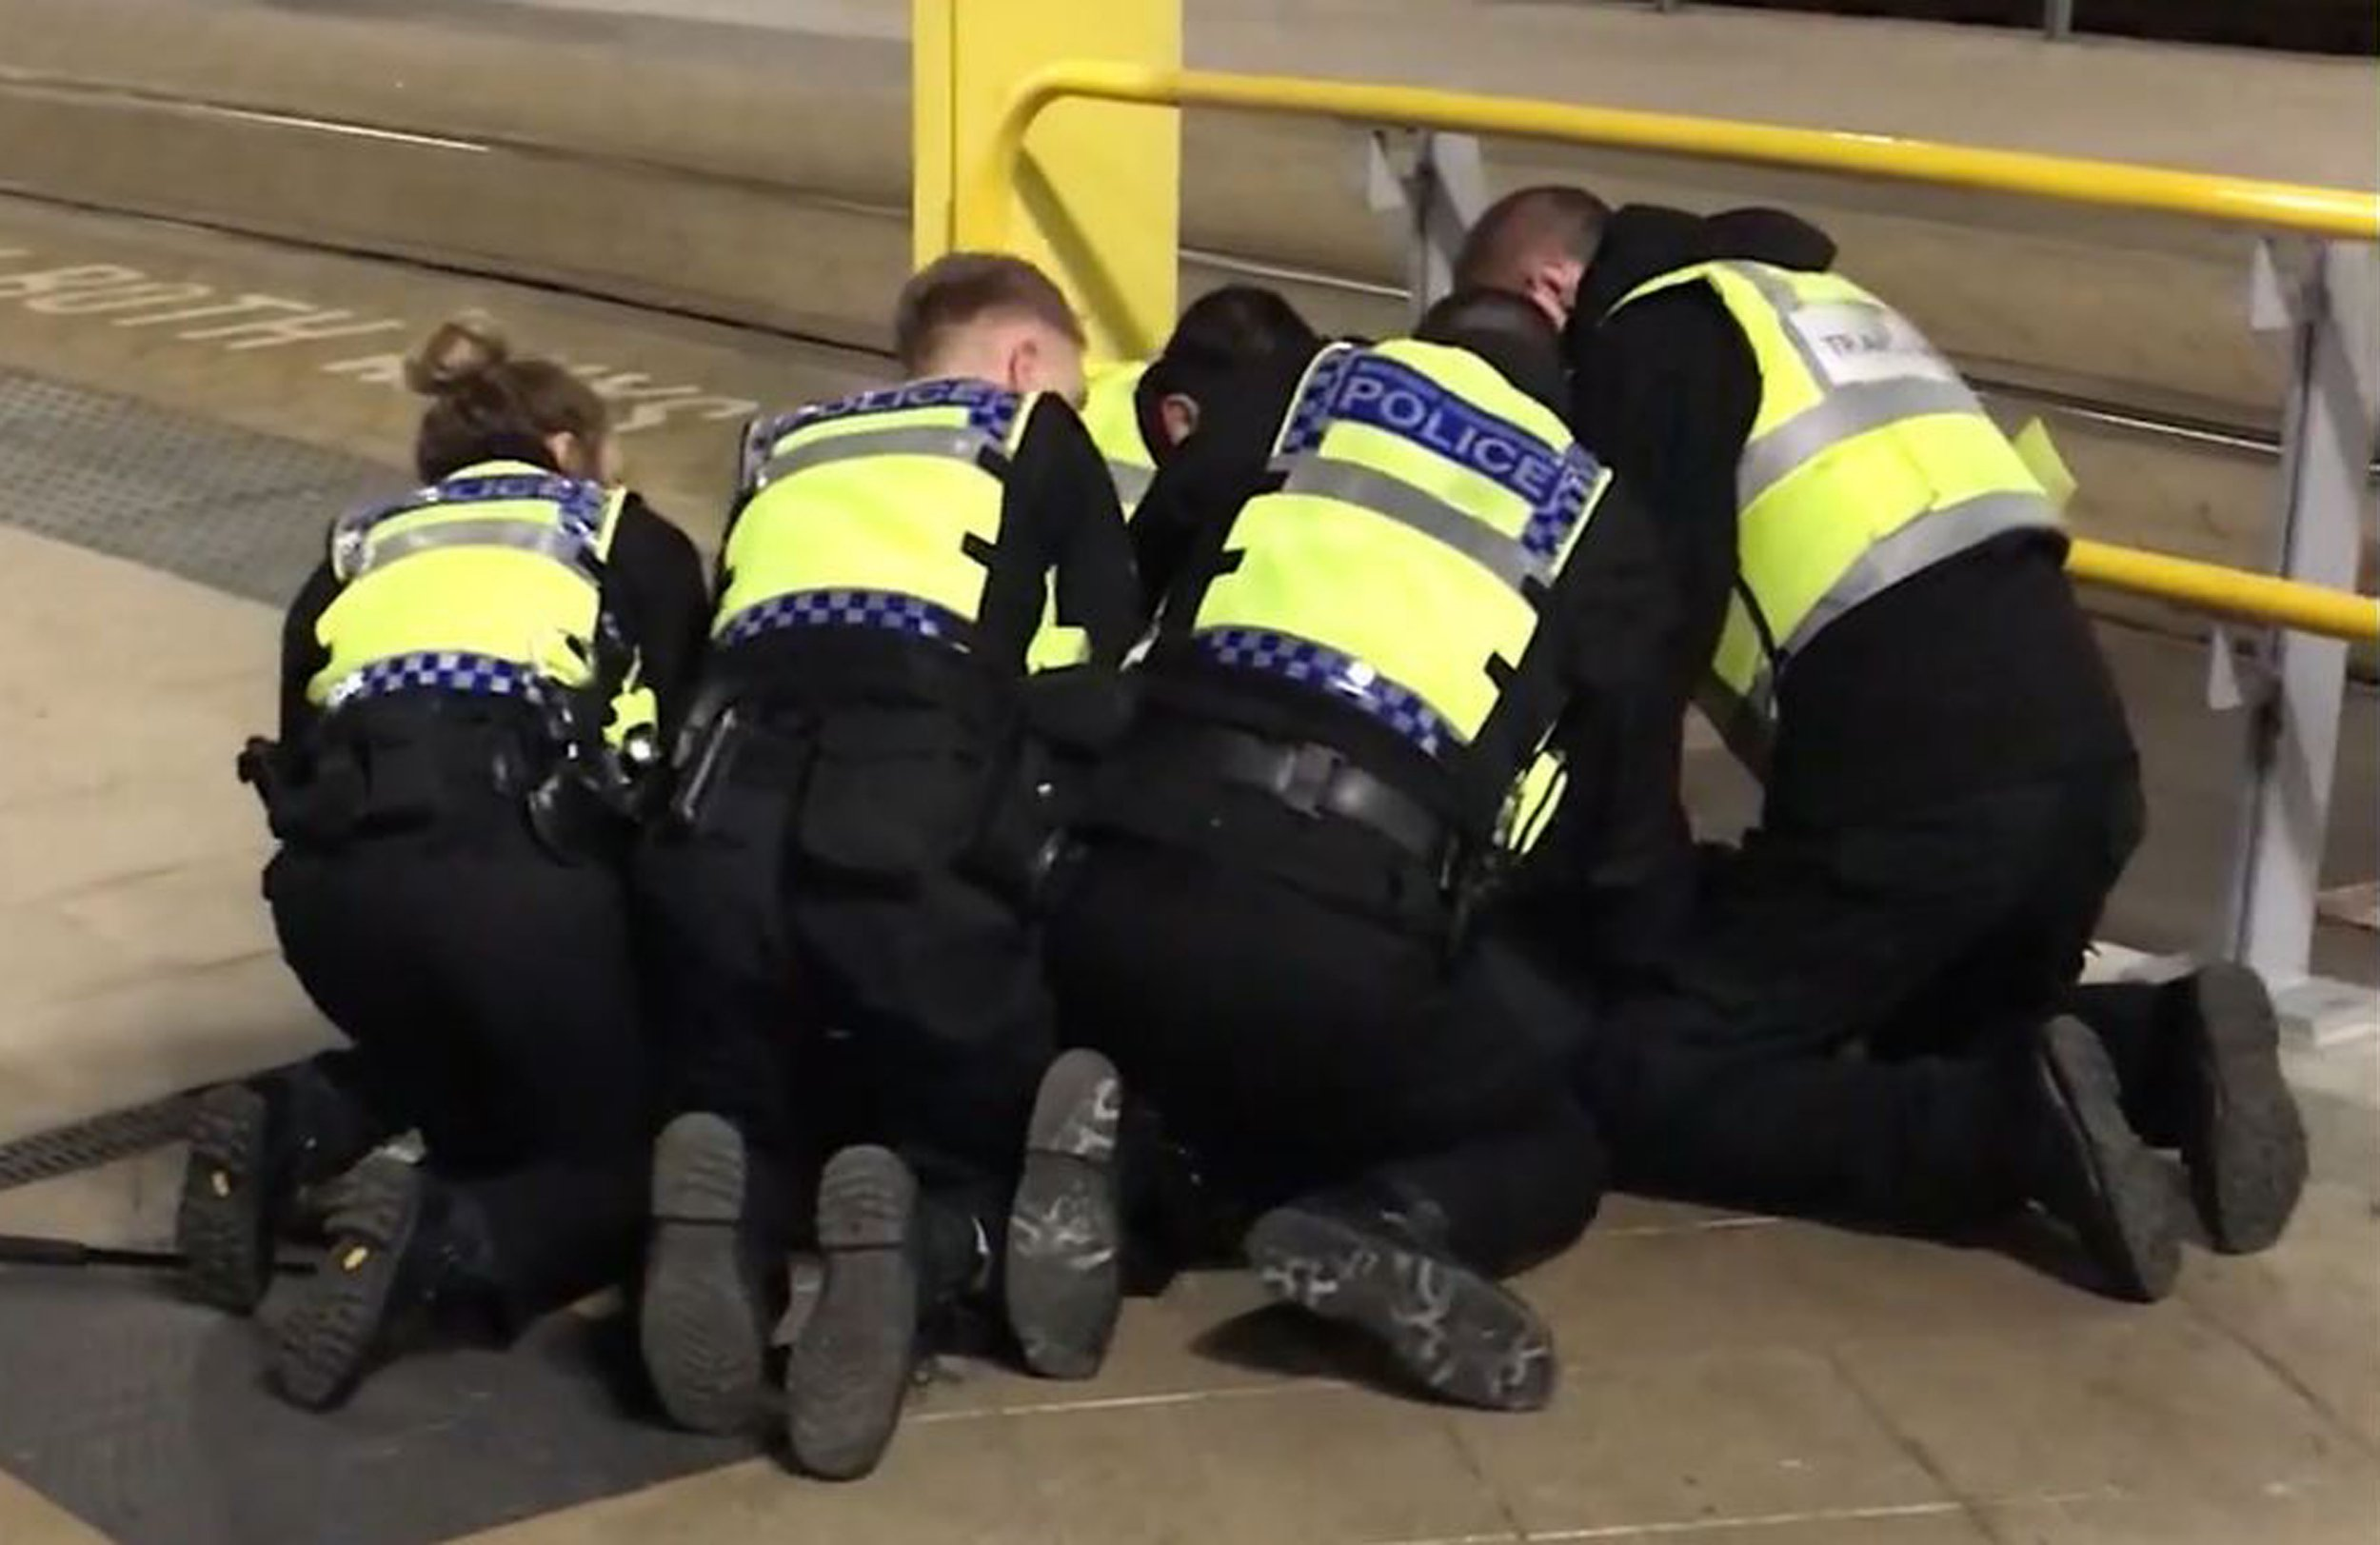 Handout photo issued by Sam Clack of police restraining a man after he stabbed three people at Victoria Station in Manchester last night. PRESS ASSOCIATION Photo. Issue date: Tuesday January 1, 2019. Two commuters - a man and woman in their 50s - were taken to hospital with knife injuries and a British Transport Police (BTP) officer was stabbed in the shoulder. Police said a man was arrested on suspicion of attempted murder and remains in custody. See PA story POLICE Manchester. Photo credit should read: Sam Clack/PA Wire NOTE TO EDITORS: This handout photo may only be used in for editorial reporting purposes for the contemporaneous illustration of events, things or the people in the image or facts mentioned in the caption. Reuse of the picture may require further permission from the copyright holder.